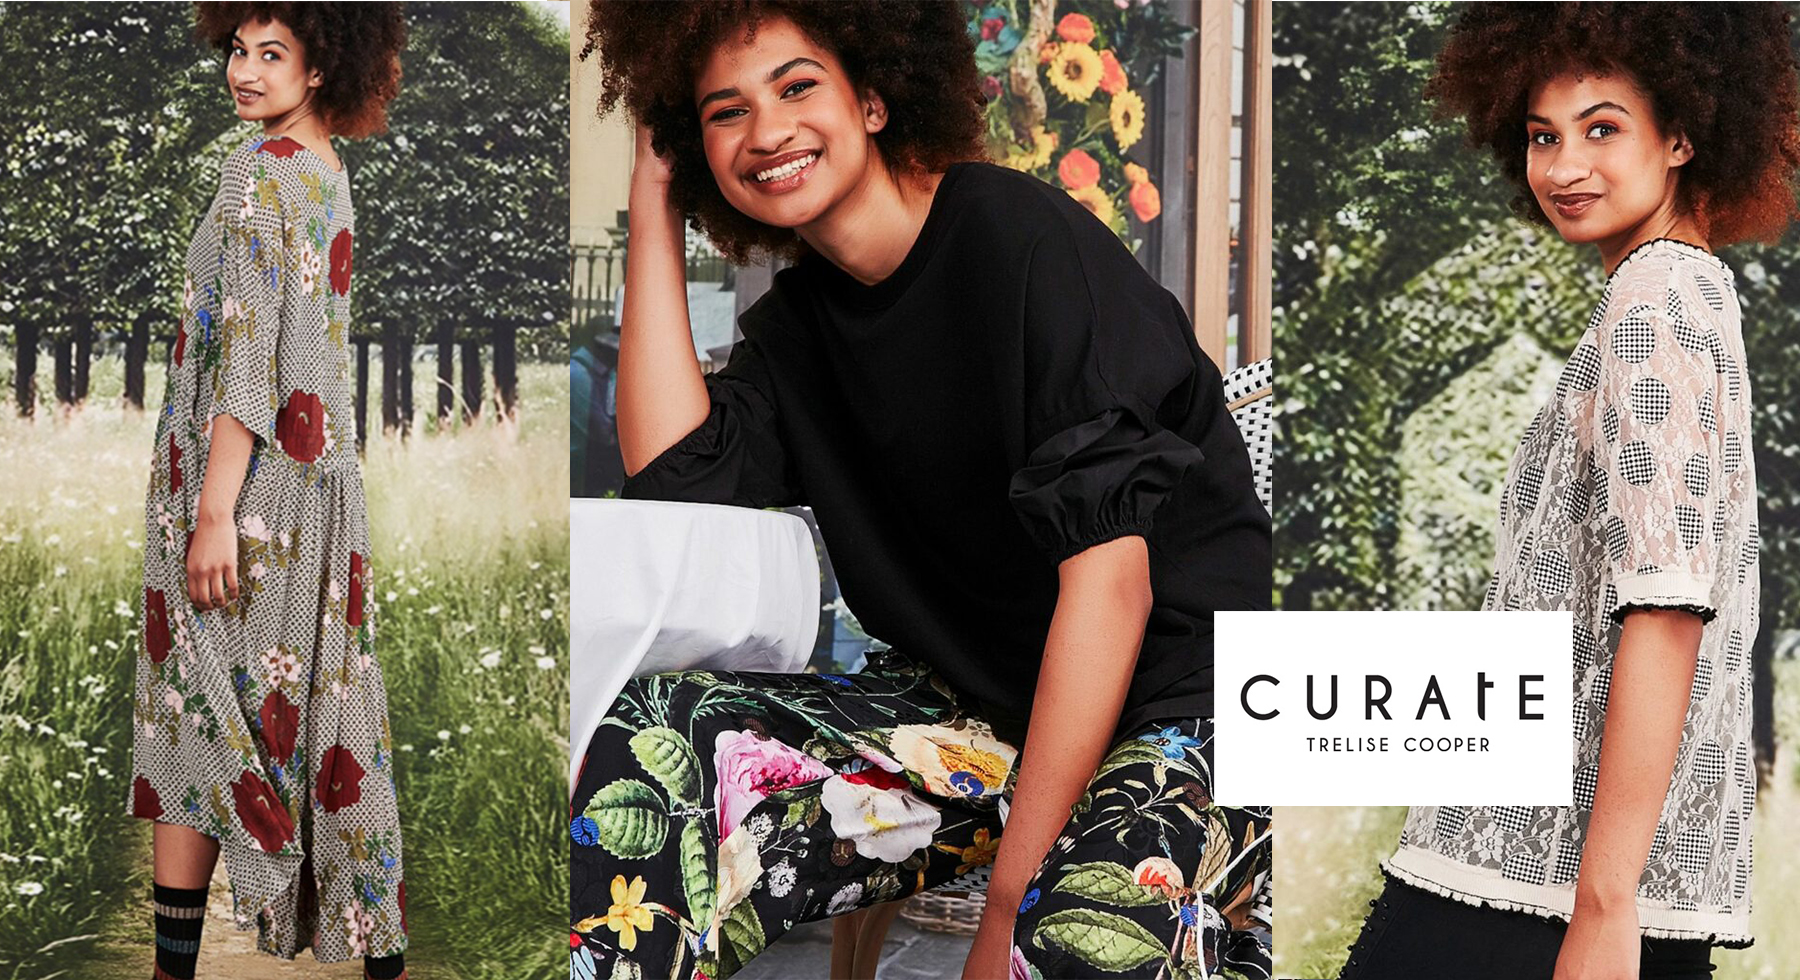 curate - trelises cooper aw21